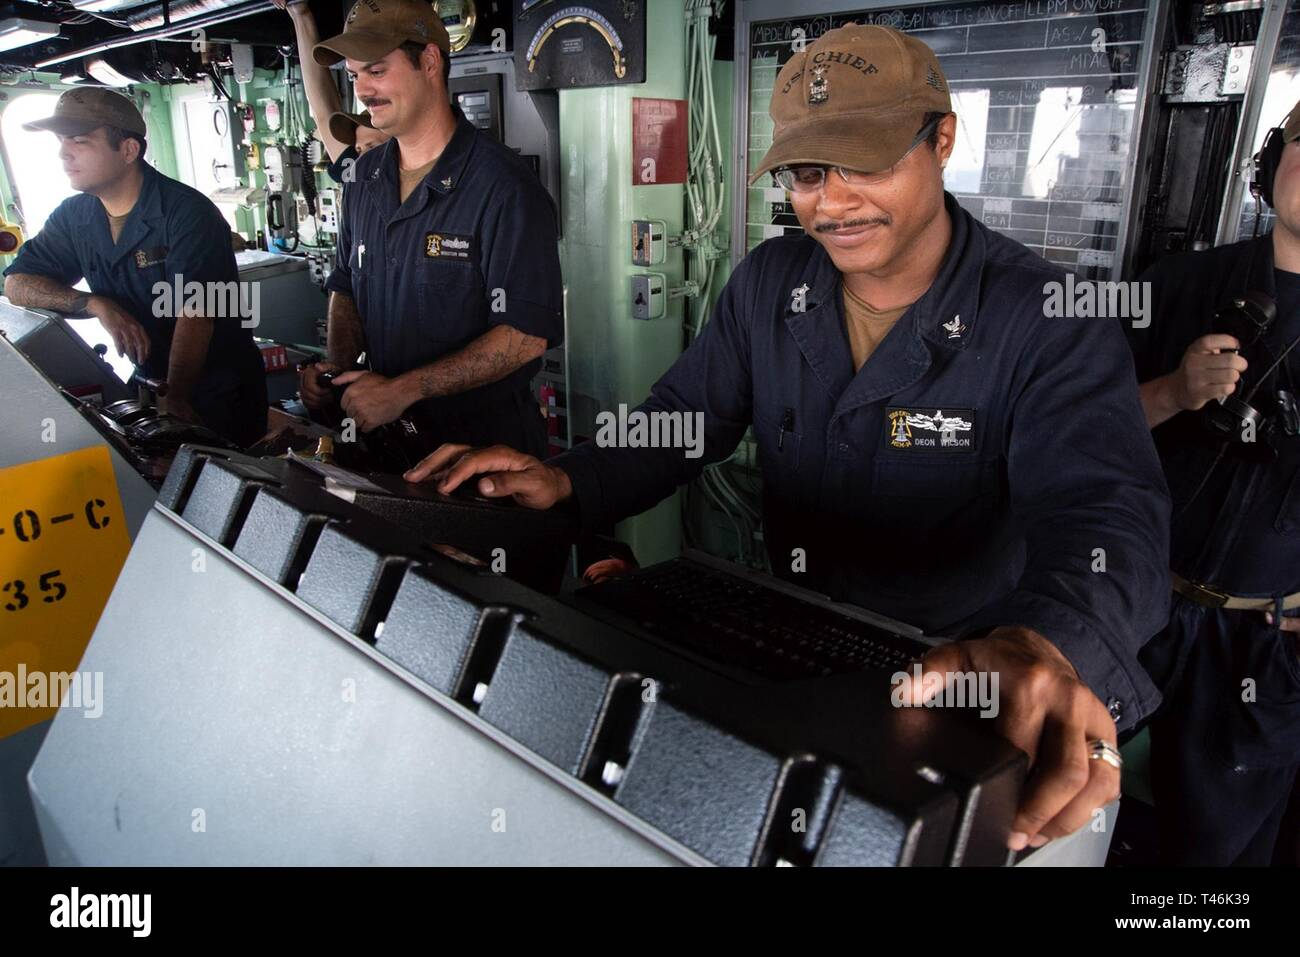 SOUTH CHINA SEA (March 16, 2019) Mineman 2nd Class Deon Wilson, from Albany, New York, monitors radar readings aboard the Avenger class mine countermeasures ship USS Chief (MCM 14) during a replenishment-at-sea with USNS Guadalupe (T-AO 200). Chief, part of Mine Countermeasure Squadron 7, is operating in the Indo-Pacific region to enhance interoperability with partners and serve as a ready-response platform for contingency operations. - Stock Image